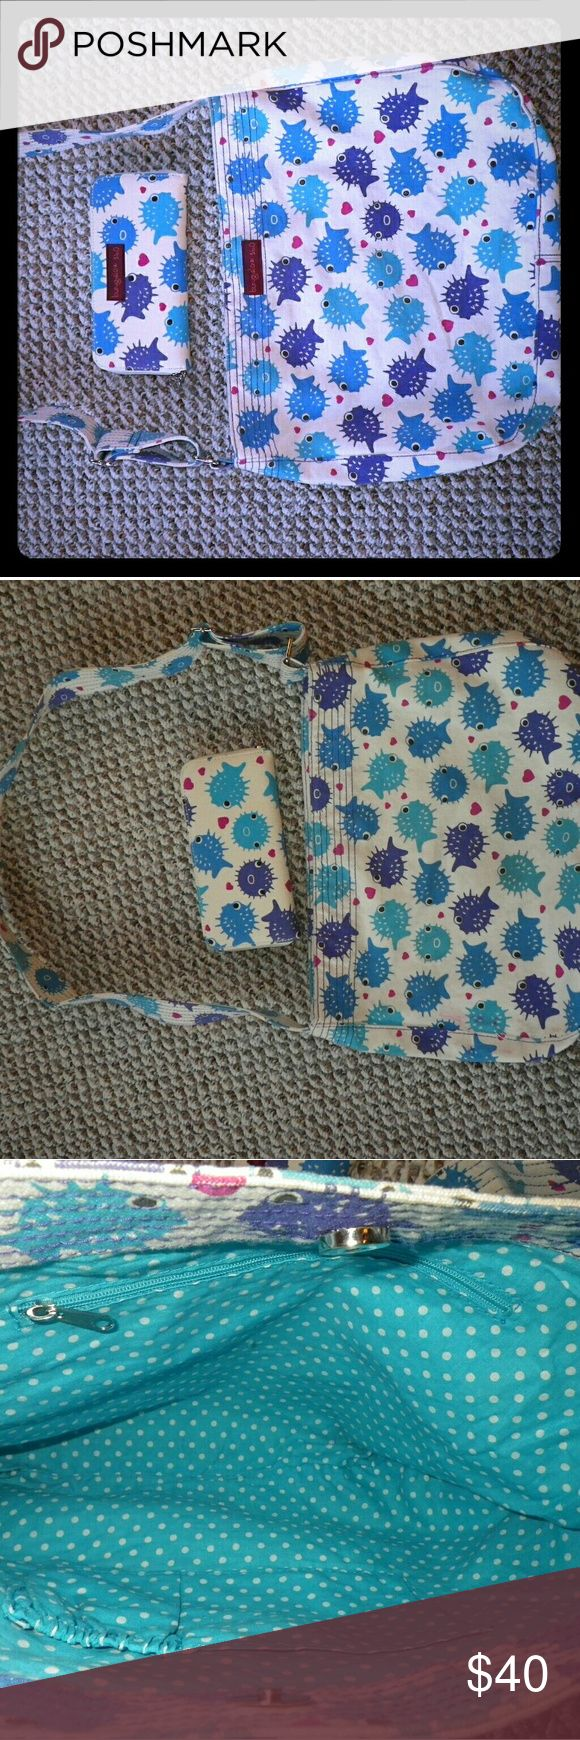 Bungalow 360 Puffer Fish Crossbody **PRICE FIRM** NWOT.  Bungalow 360 Vegan Cotton Canvas Crossbody Messenger Bag & Wallet.  Bright and fun!  Love it but I have too many bags!!!  Selling bag and matching zip-around wallet as a set.  See flaw in pic #4.  It was this way when I purchased it new a few months ago...I think the dye smeared.  Not that noticable but the bag IS WASHABLE.    **BUNGALOW 360**  **KAVU BAG**  **CROSSBODY BAG**  **MESSENGER BAG** Bungalow 360 Bags Crossbody Bags